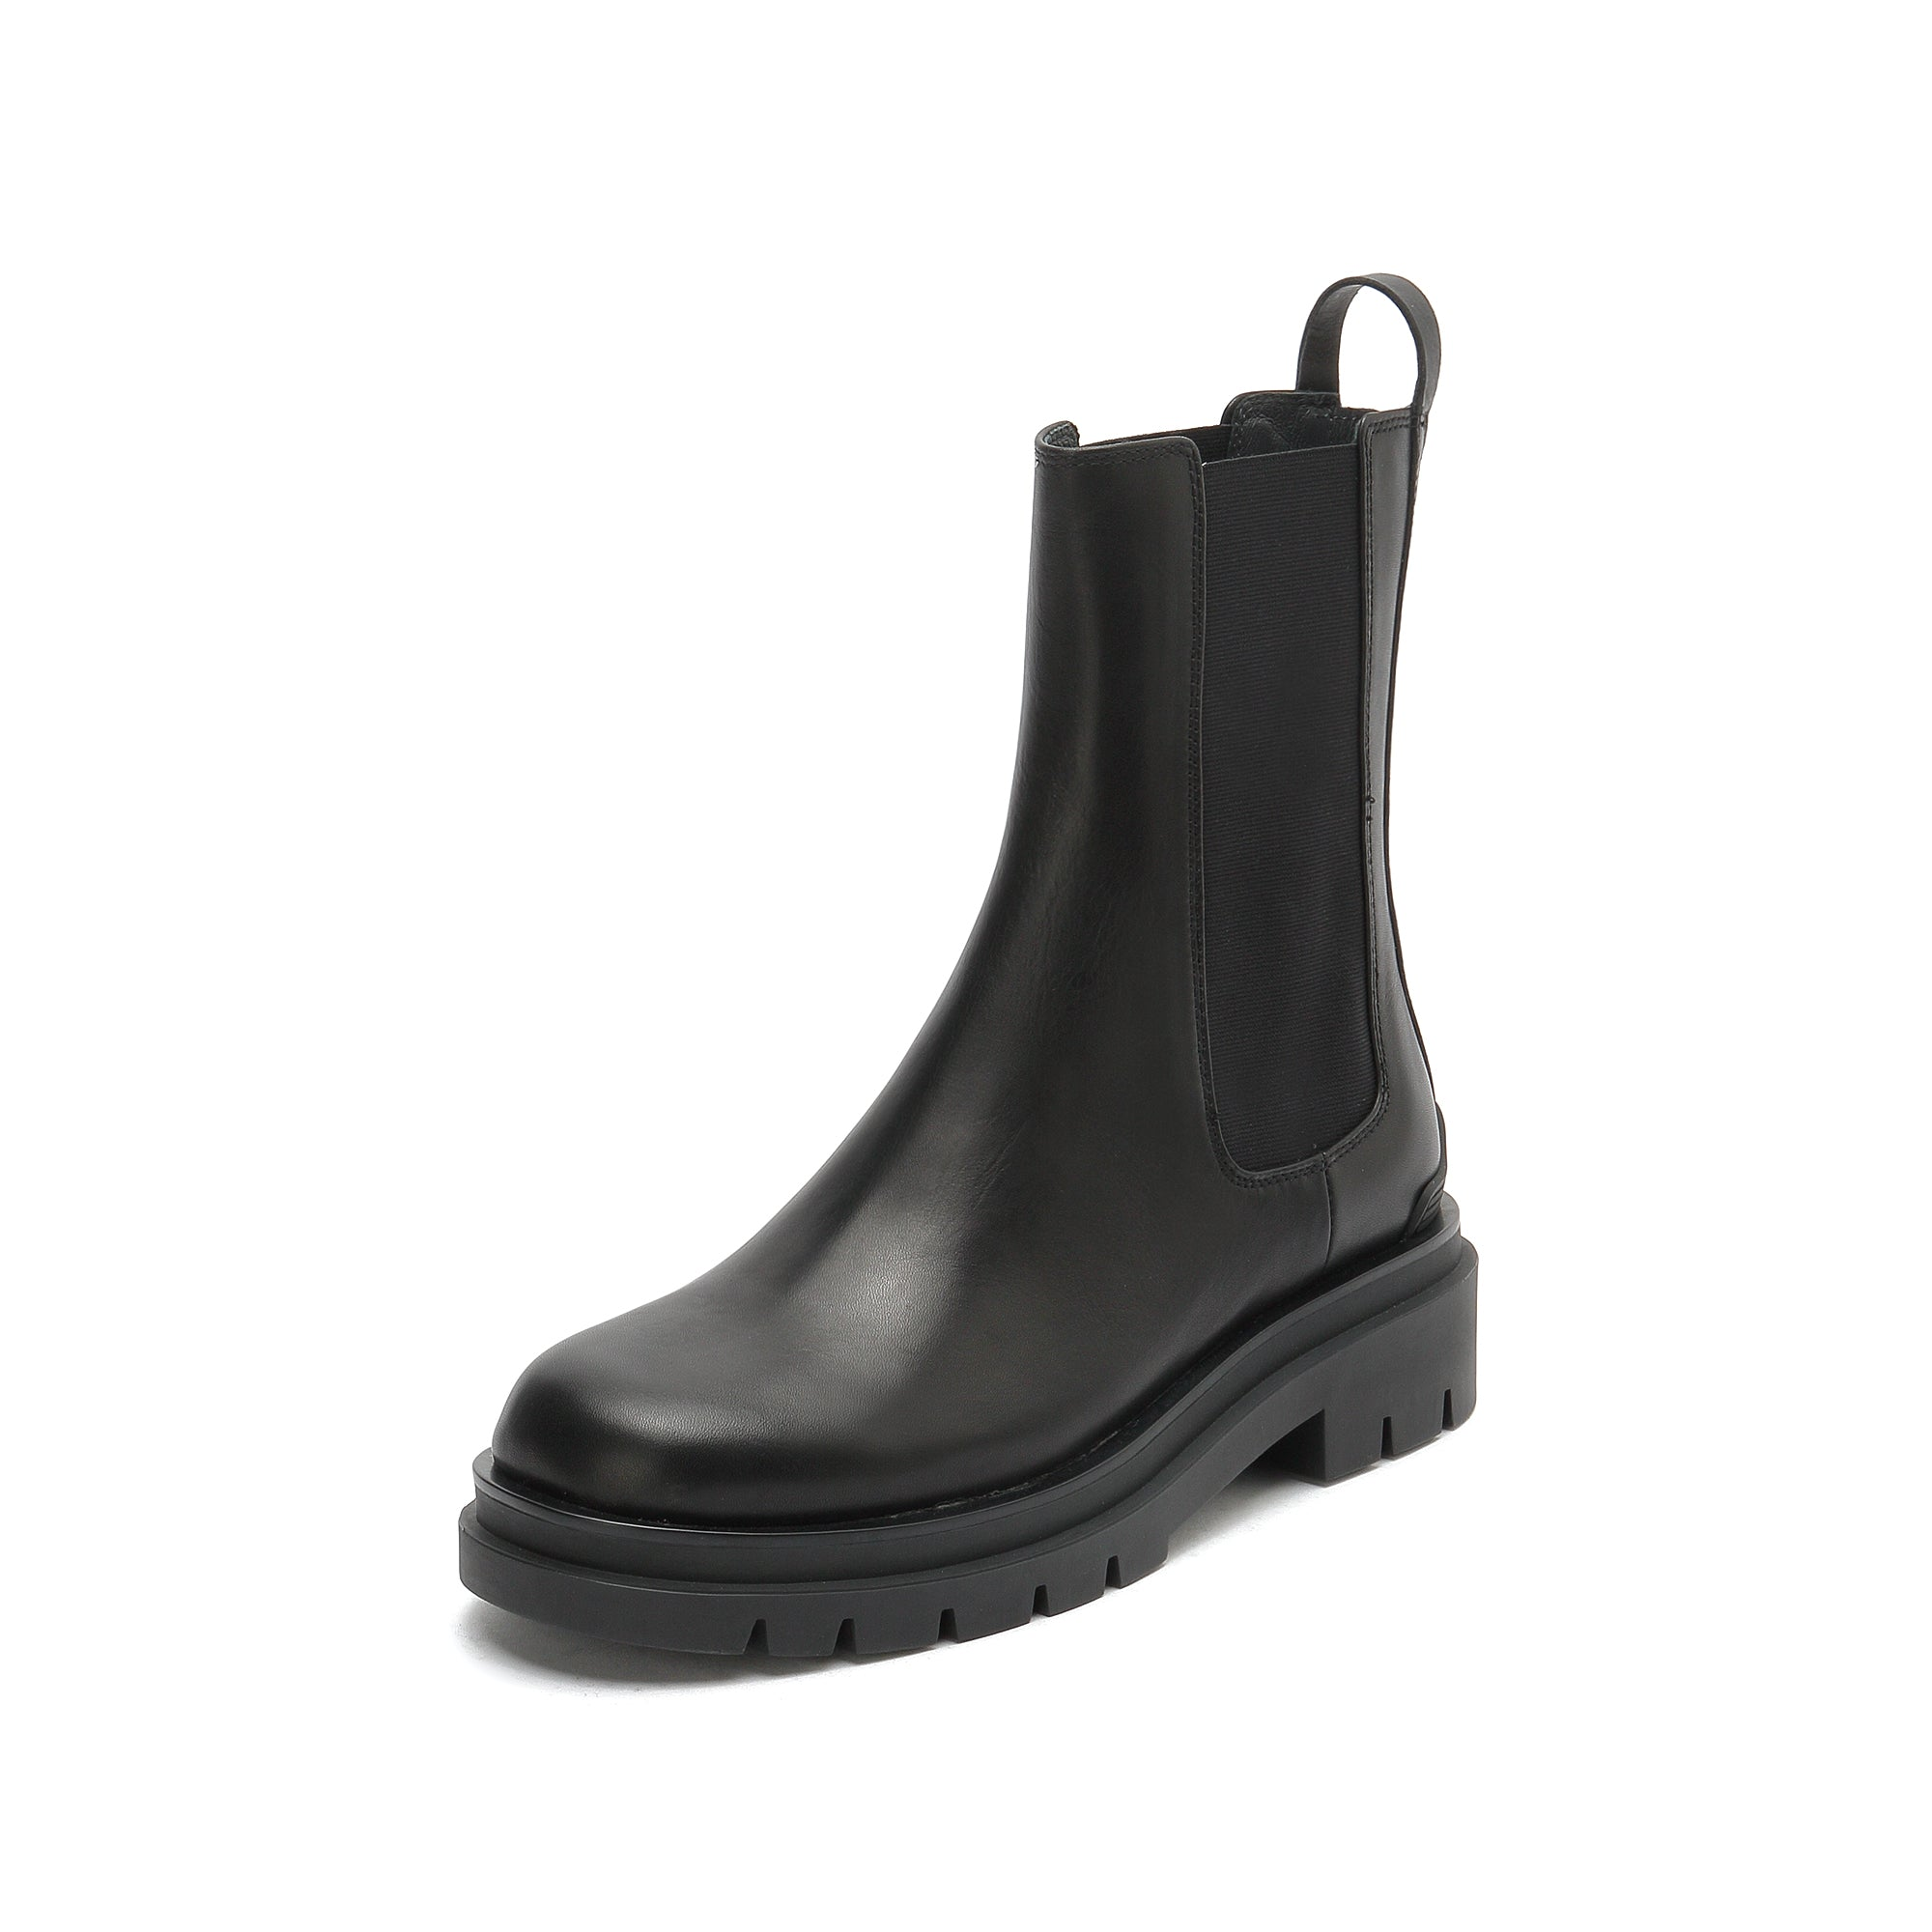 LEATHER CHELSEA BOOTS WITH ZIPPER